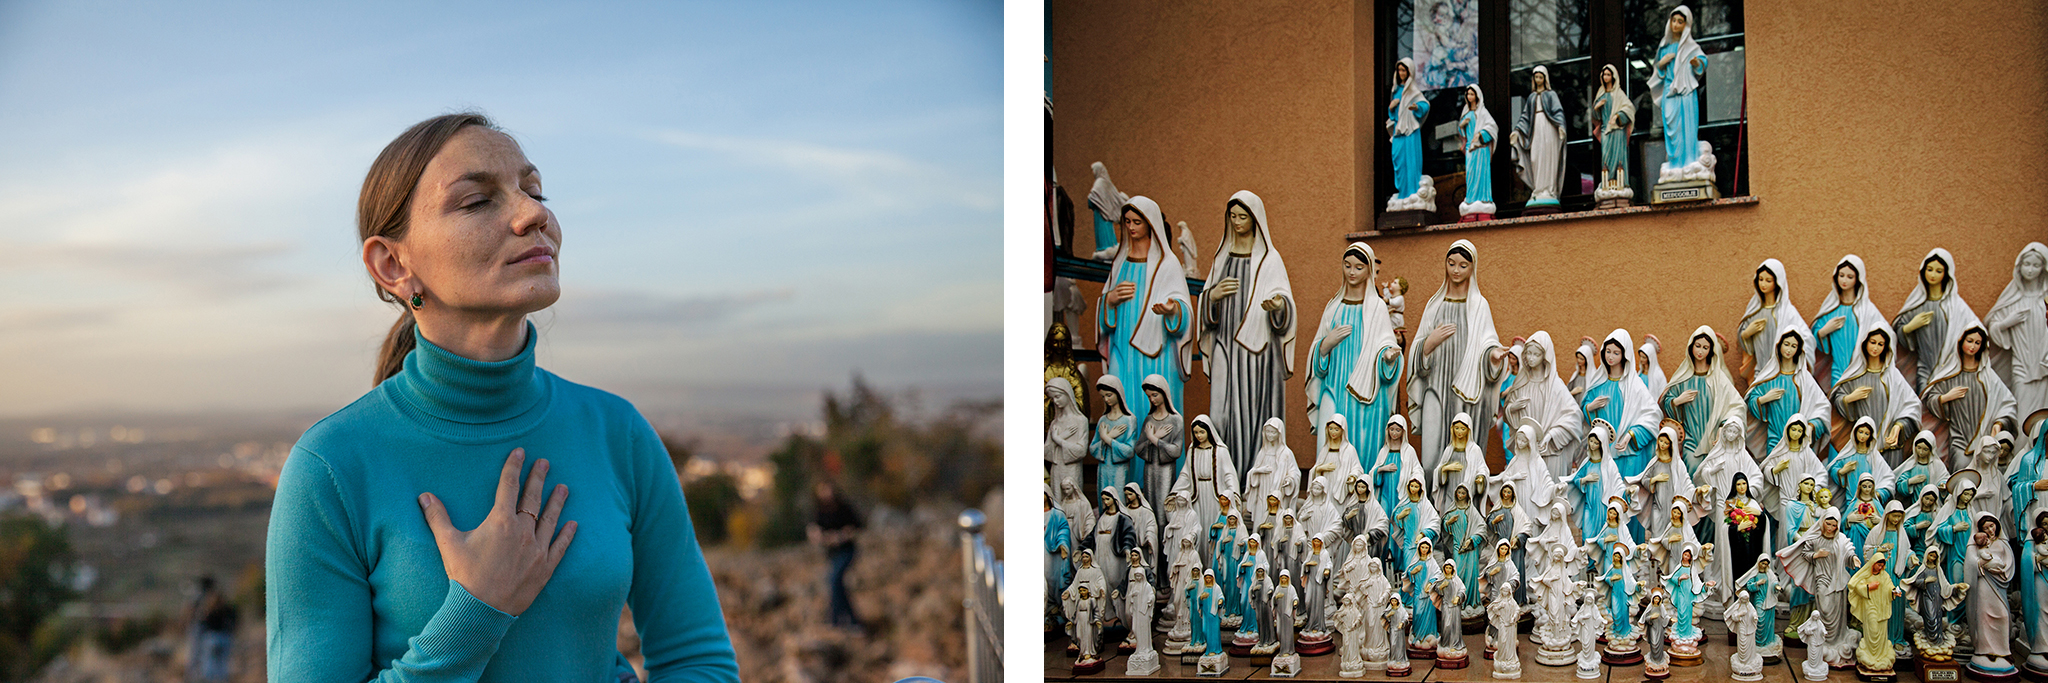 "Anna Pidlisna, 32, of Ukraine, says she came to Medjugorje—where plaster statues can fetch about 30 euros apiece—after receiving a vision of Mary. Apparitions aren't the only Marian sign; many say they've seen a ""spinning sun."" Physicist Artur Wirowski has an earthly explanation: It can occur when sunlight reflects and refracts charged ice crystals vibrating in sync within the clouds."